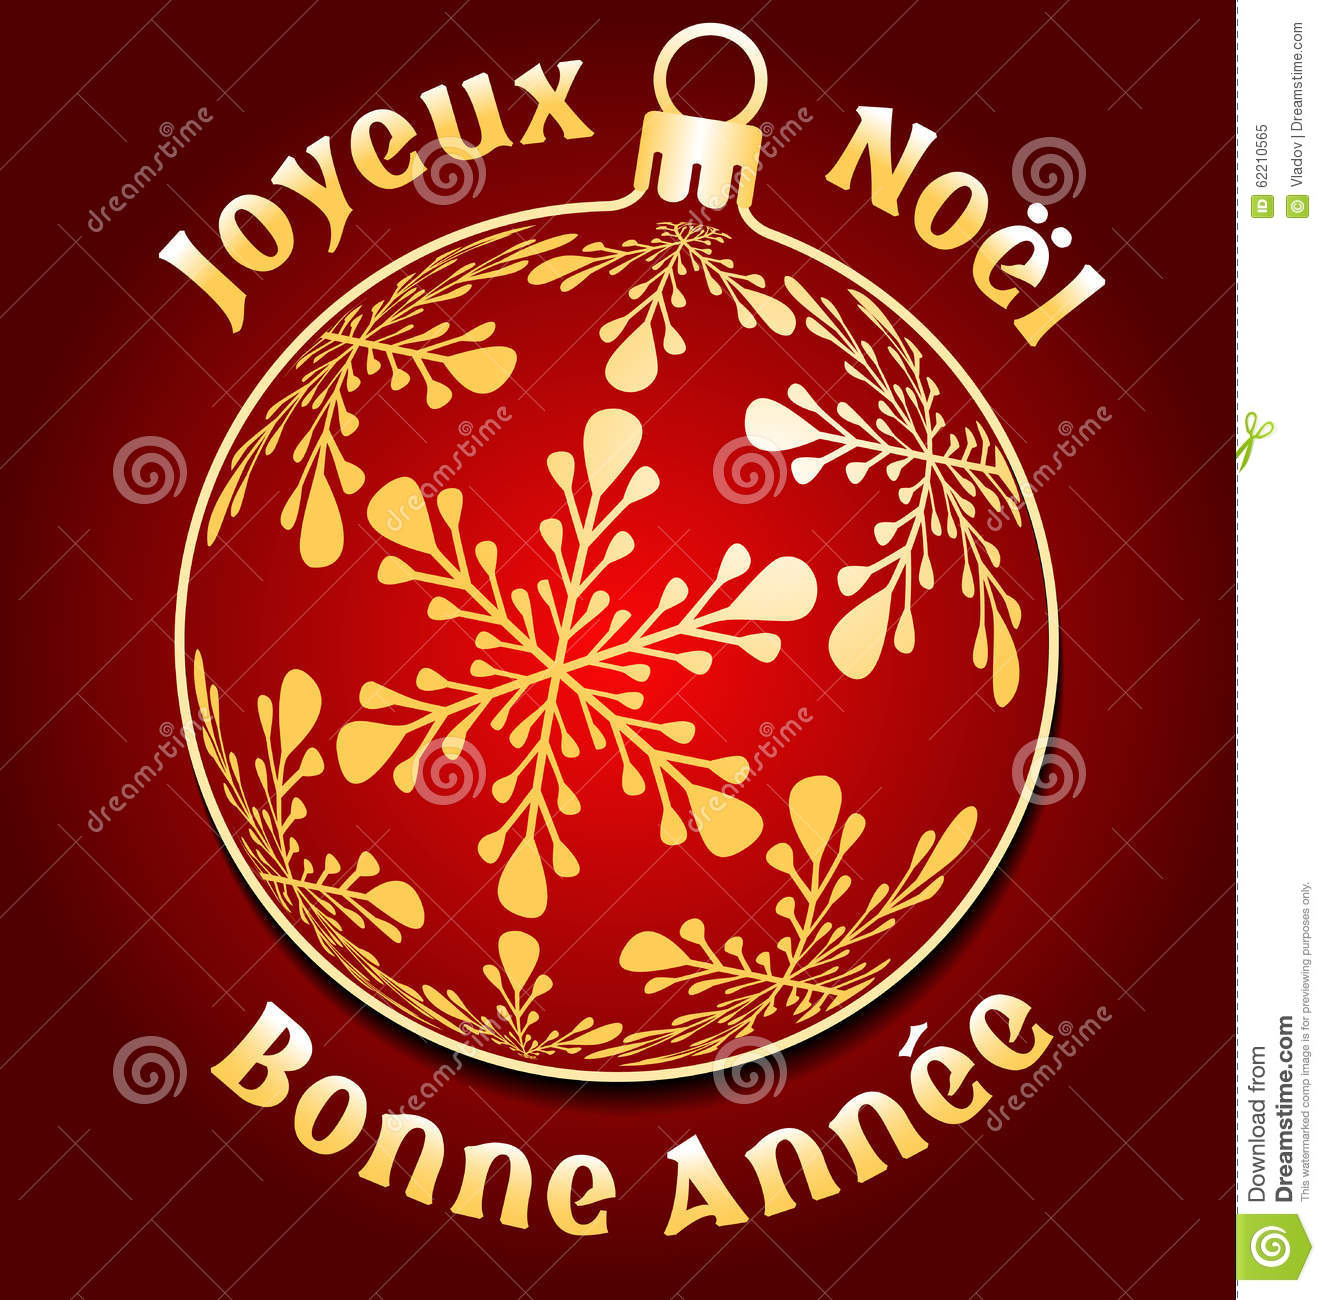 French merry christmas and new year background stock vector french merry christmas and new year background m4hsunfo